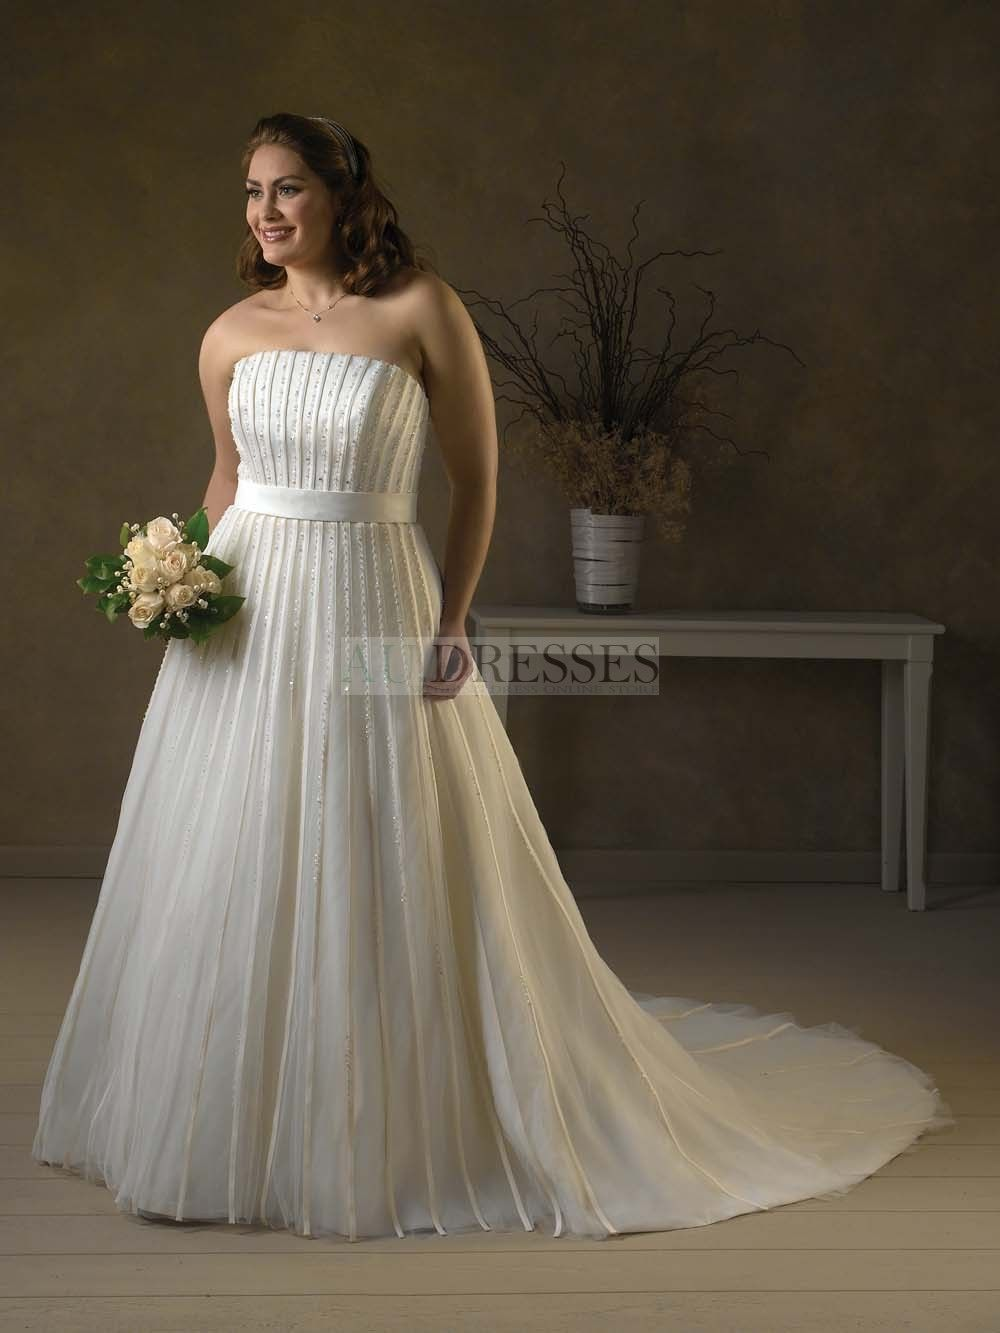 Exquisite a line flat neckline chubby empire waist sash wrinkle gorgeous empire strapless floor length chapel ruffling sequins plus size wedding dressesa line wedding dresseswedding dressesbuy high quality dresses ombrellifo Choice Image